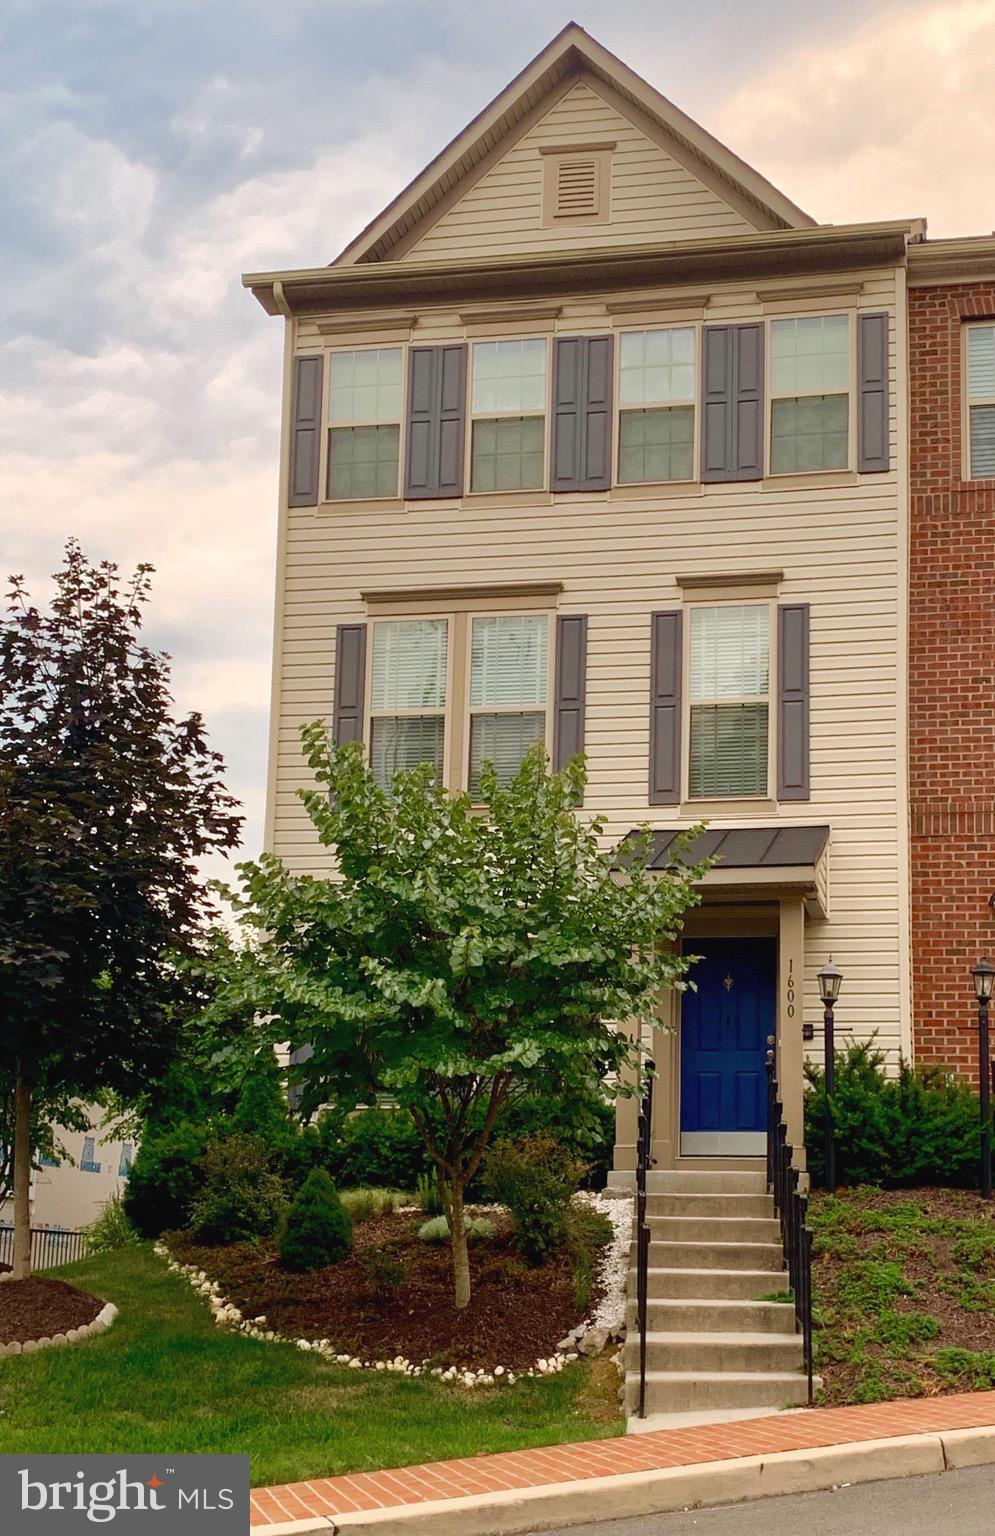 WELCOME HOME!!! Perfectly situated just off of I-95 in the historic town of Occoquan this exquisite